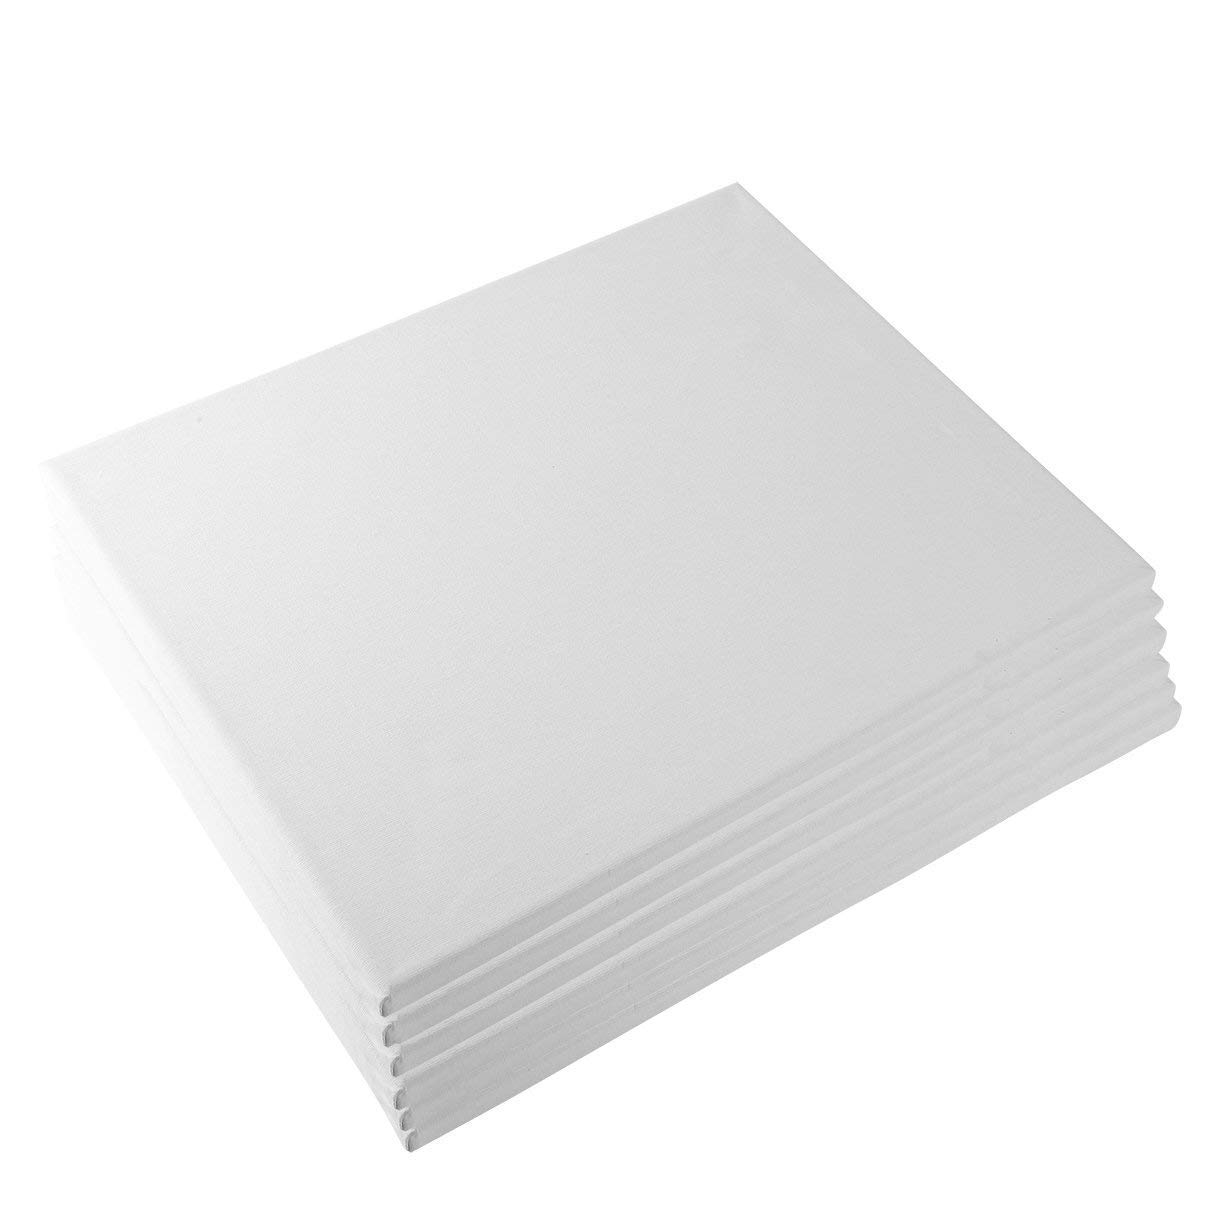 Tosnail 11x14 Stretched Canvas Panels Set - Pack of 6 4336944032